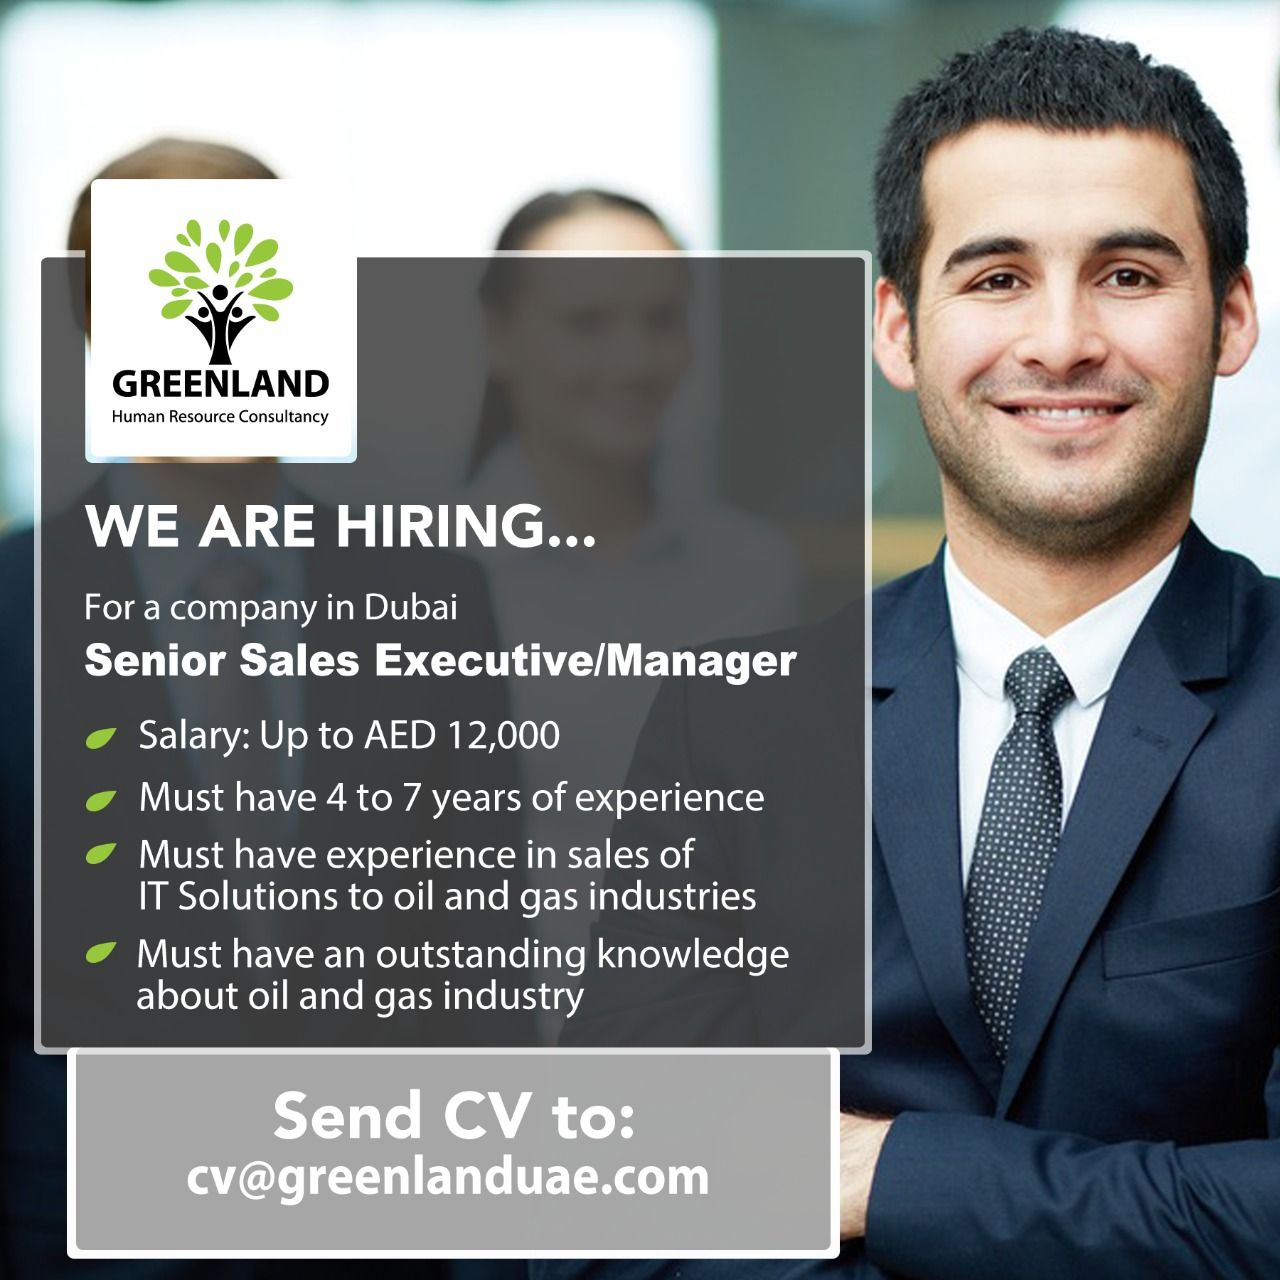 We are currently looking for a Senior Sales Executive